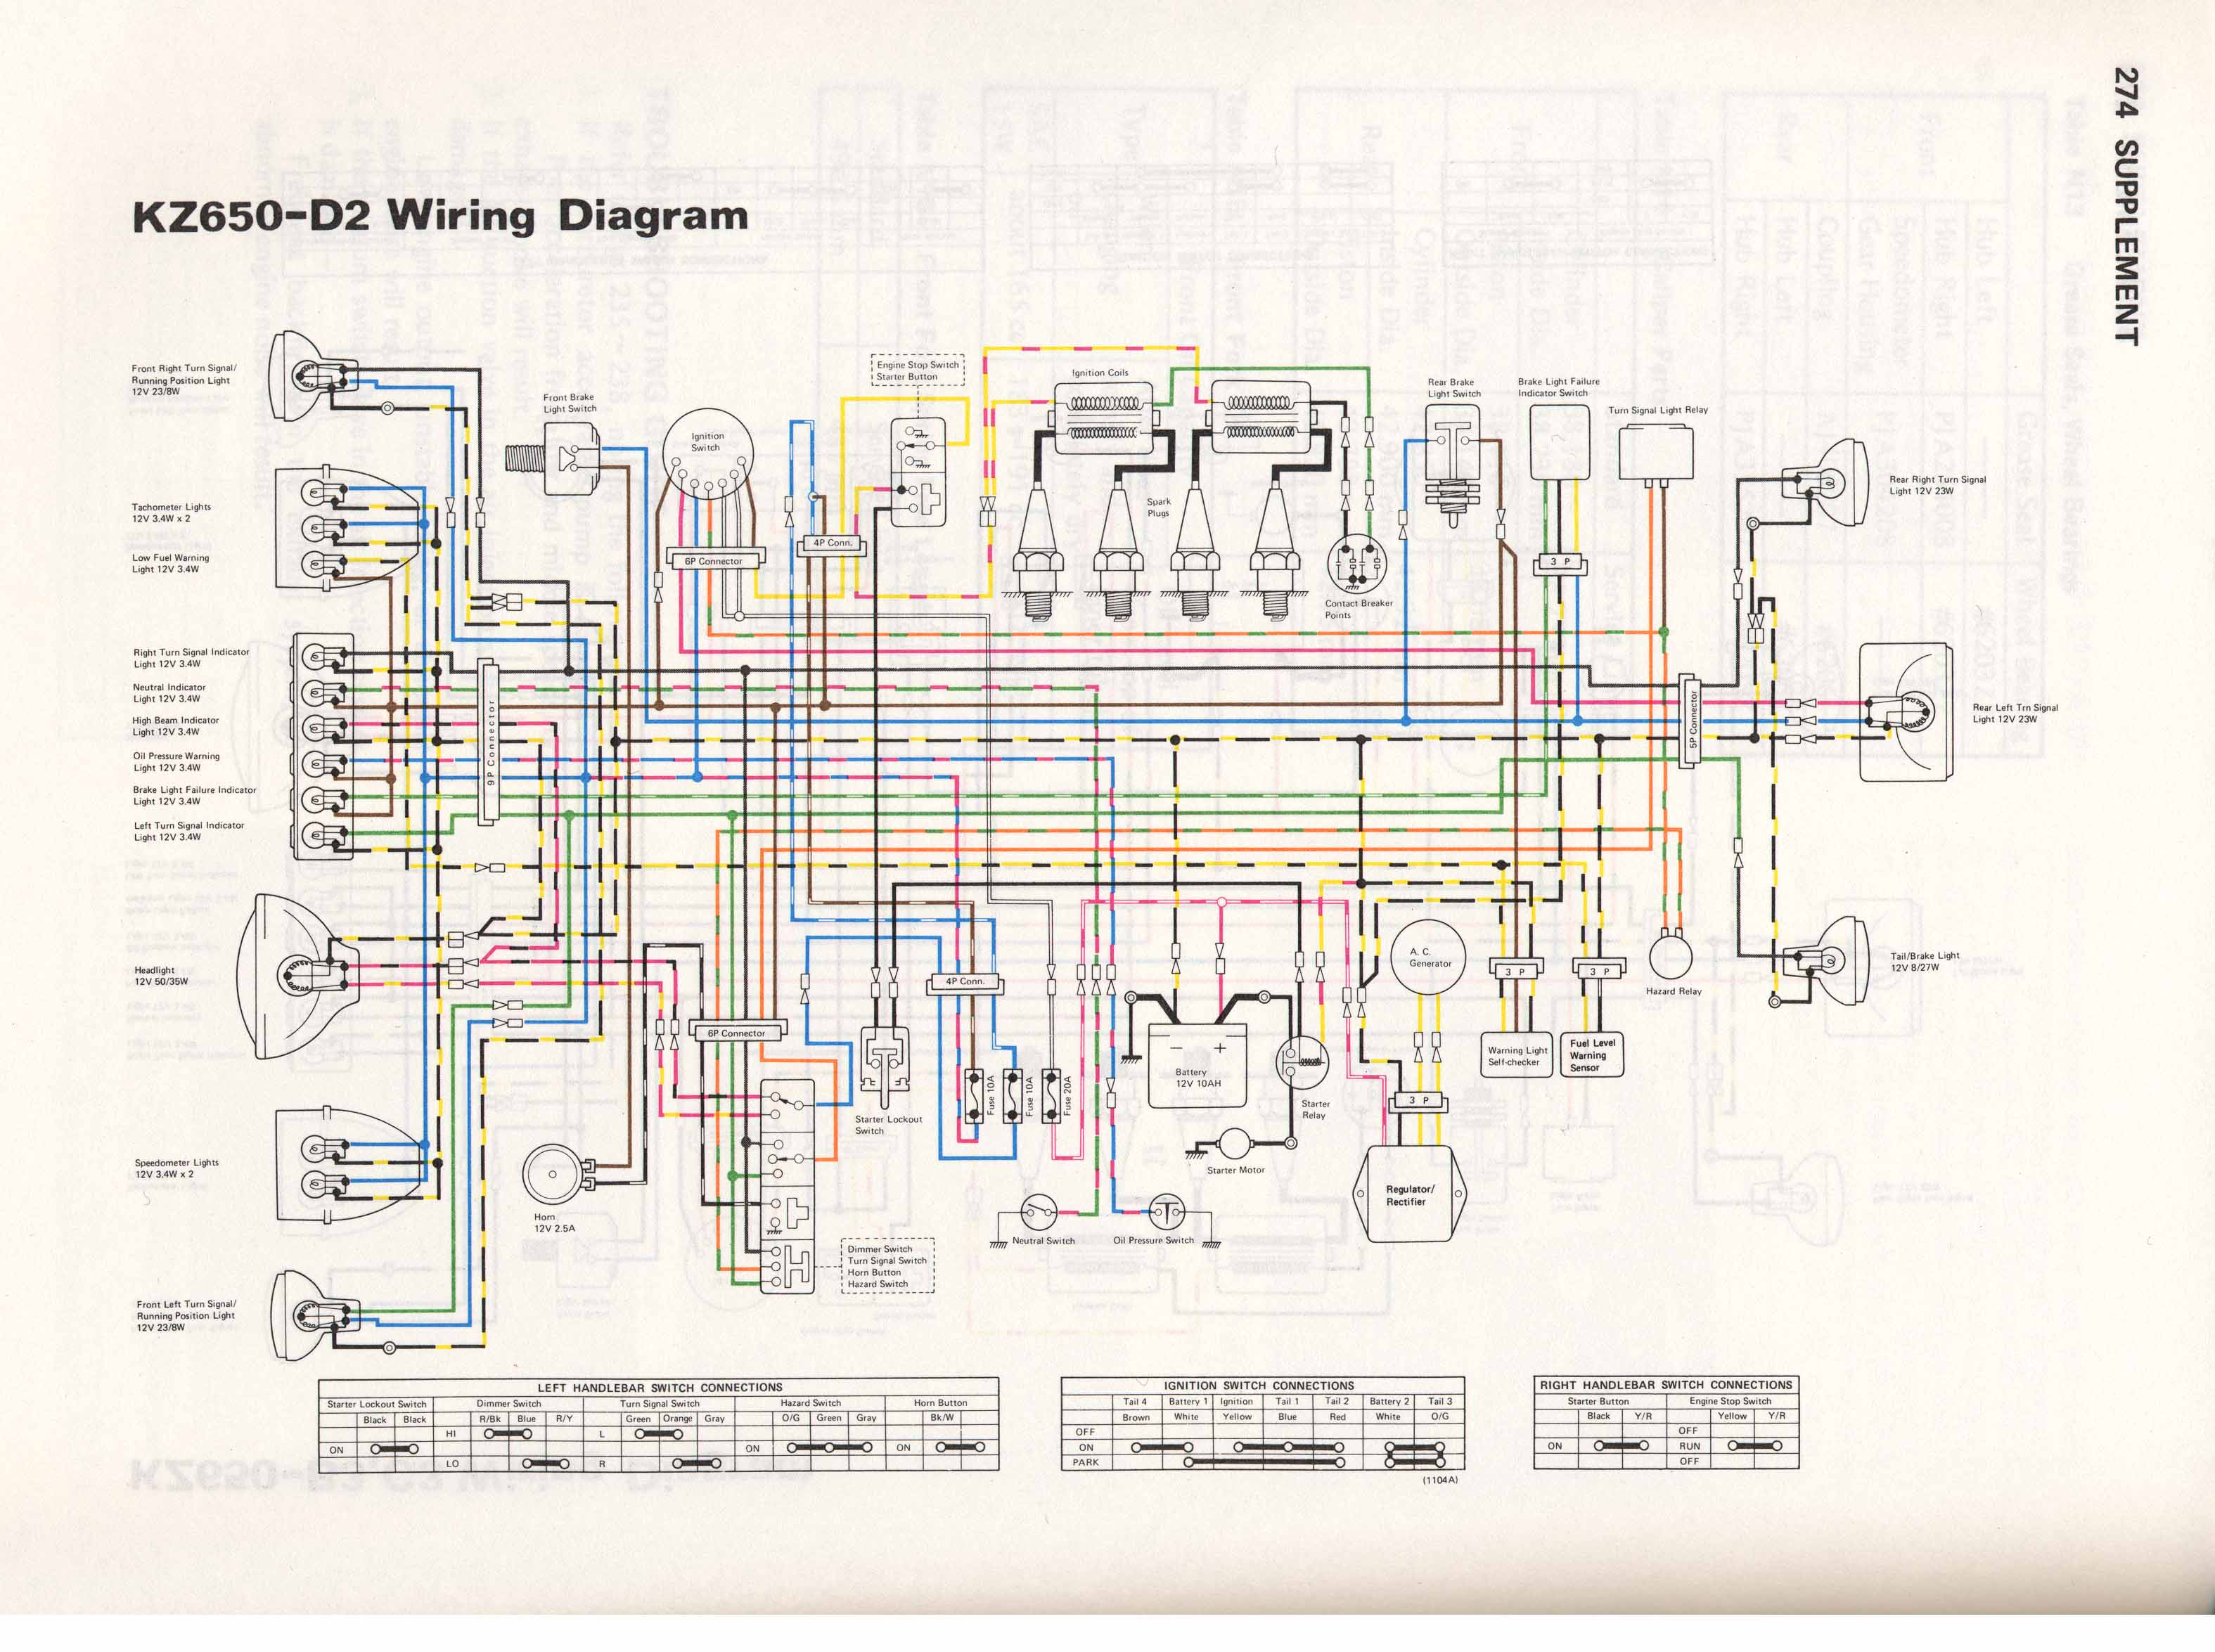 Kz650info Wiring Diagrams Yamaha 1100 Diagram Kz650 D2